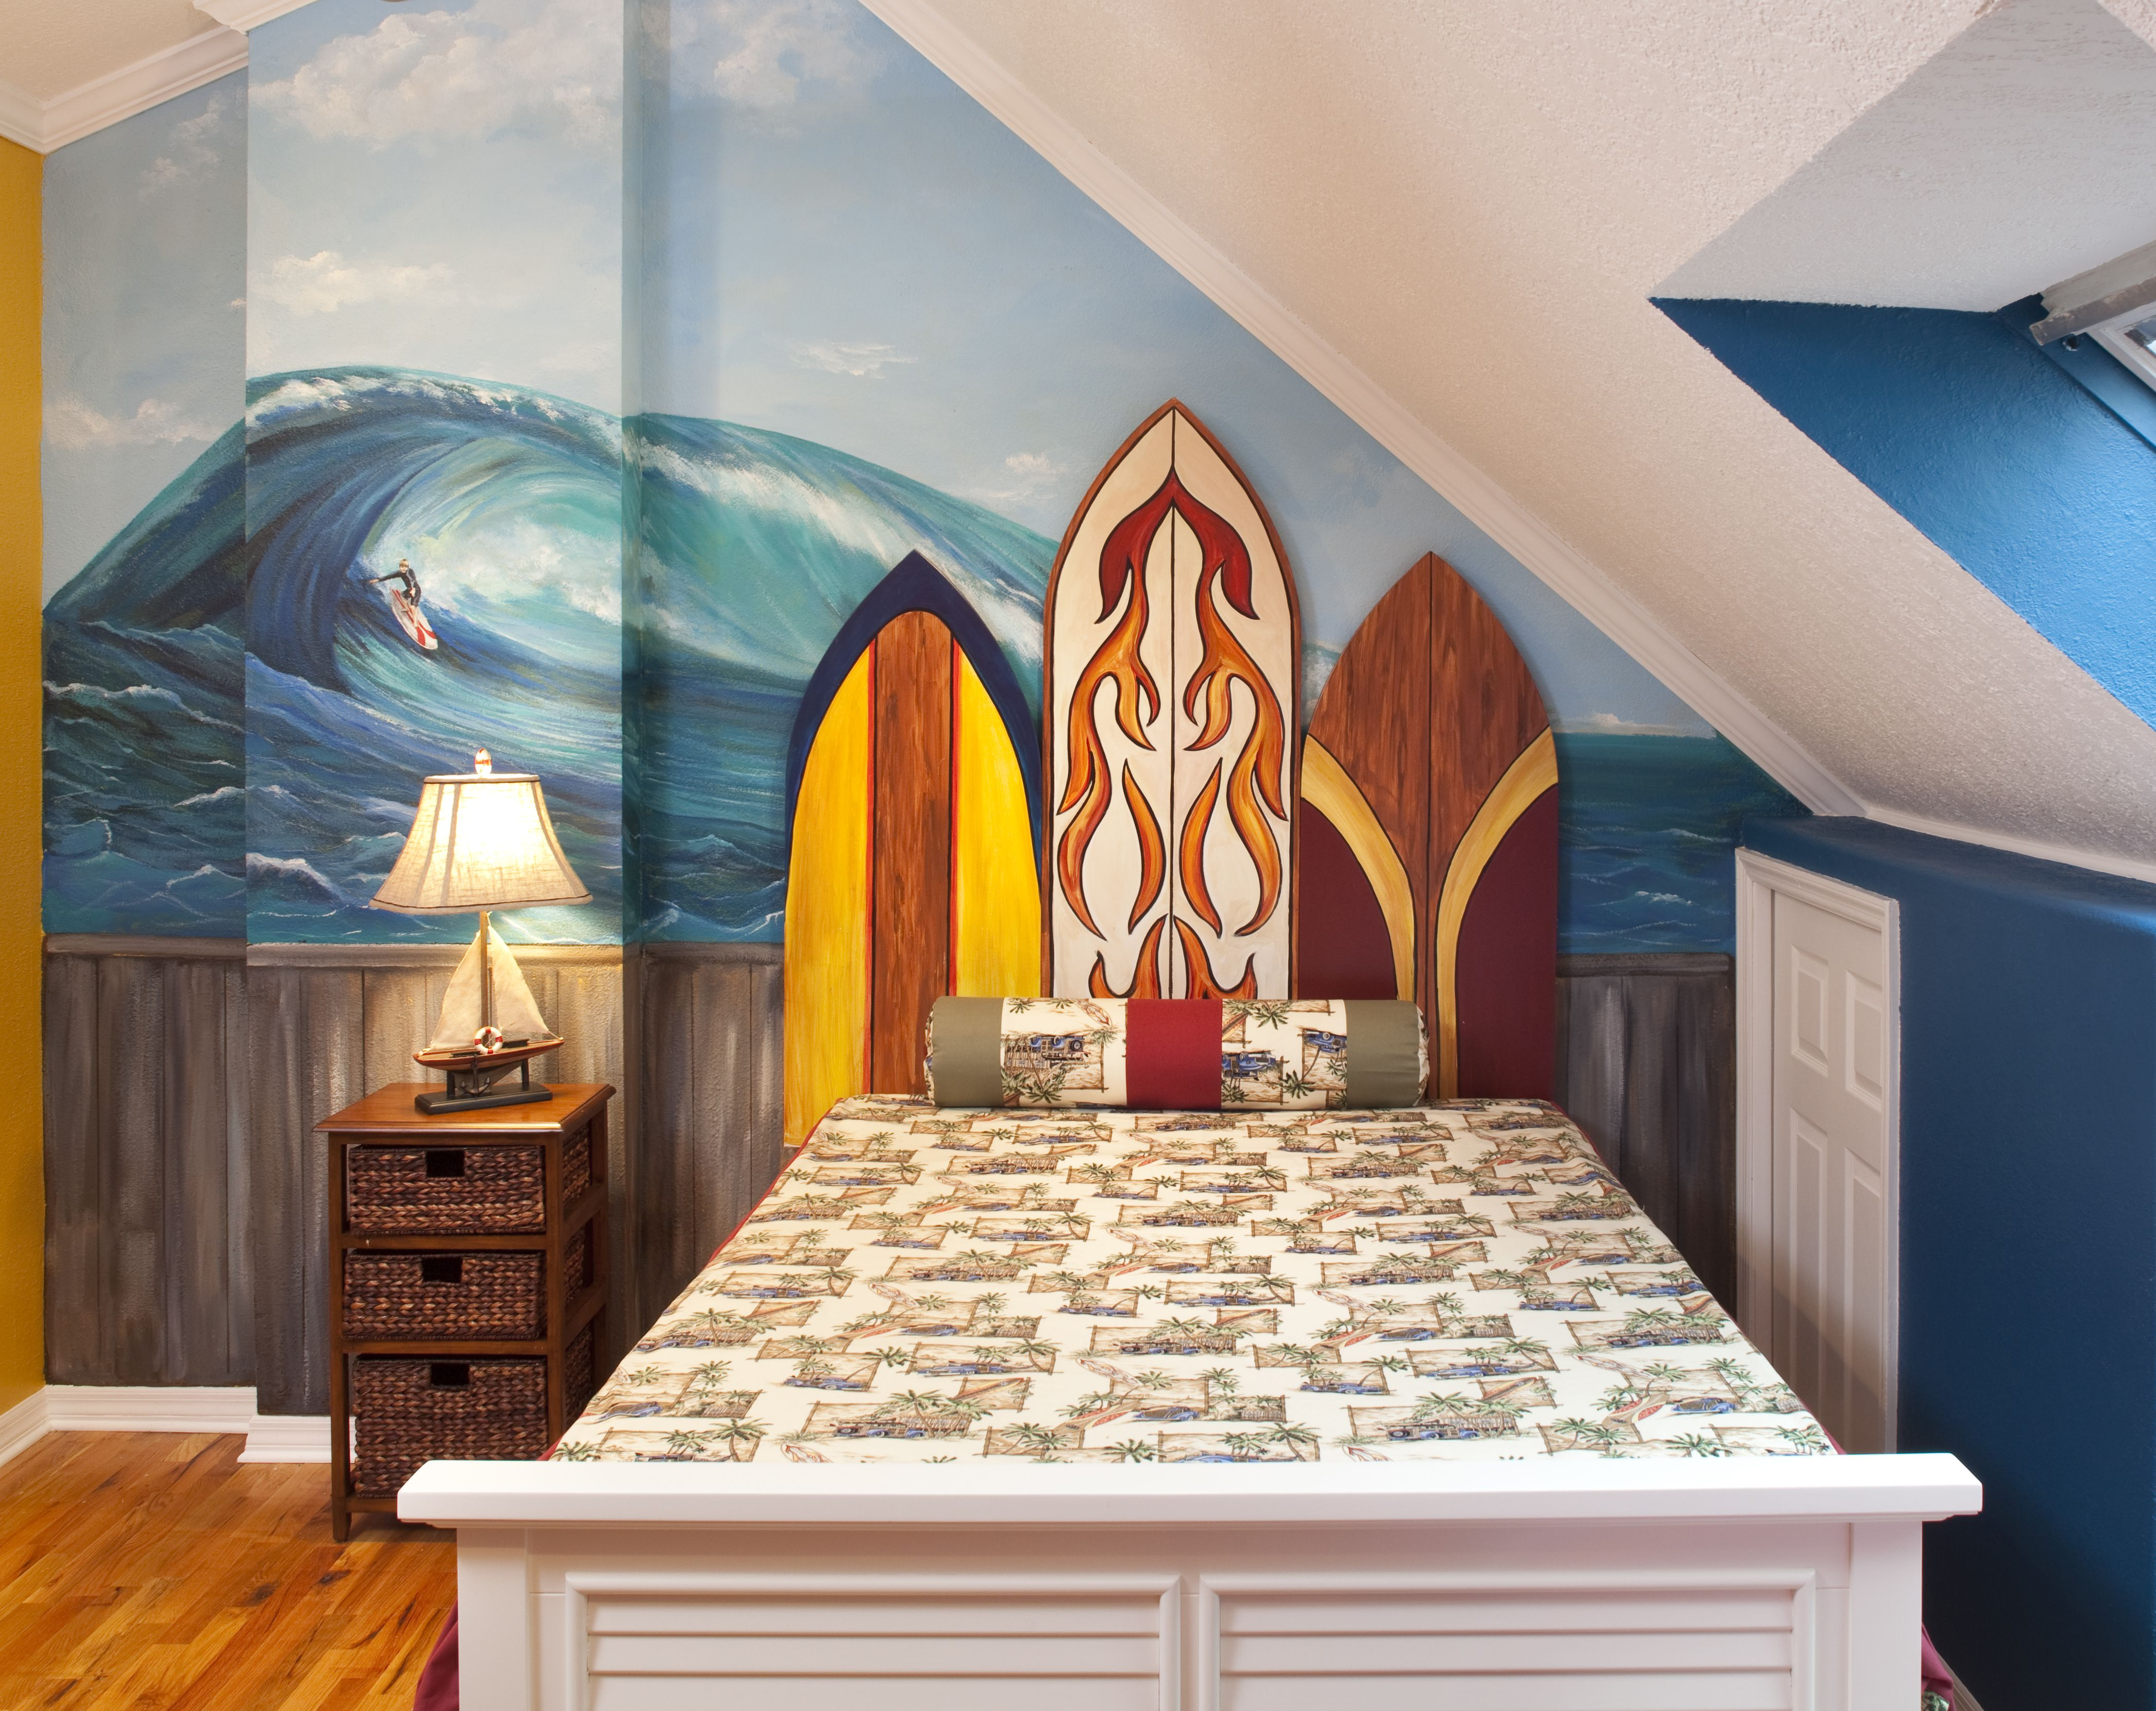 Surf your dreams in this themed childrens bedroom with custom surf your dreams in this themed childrens bedroom with custom wall mural inspired from the childs amipublicfo Image collections